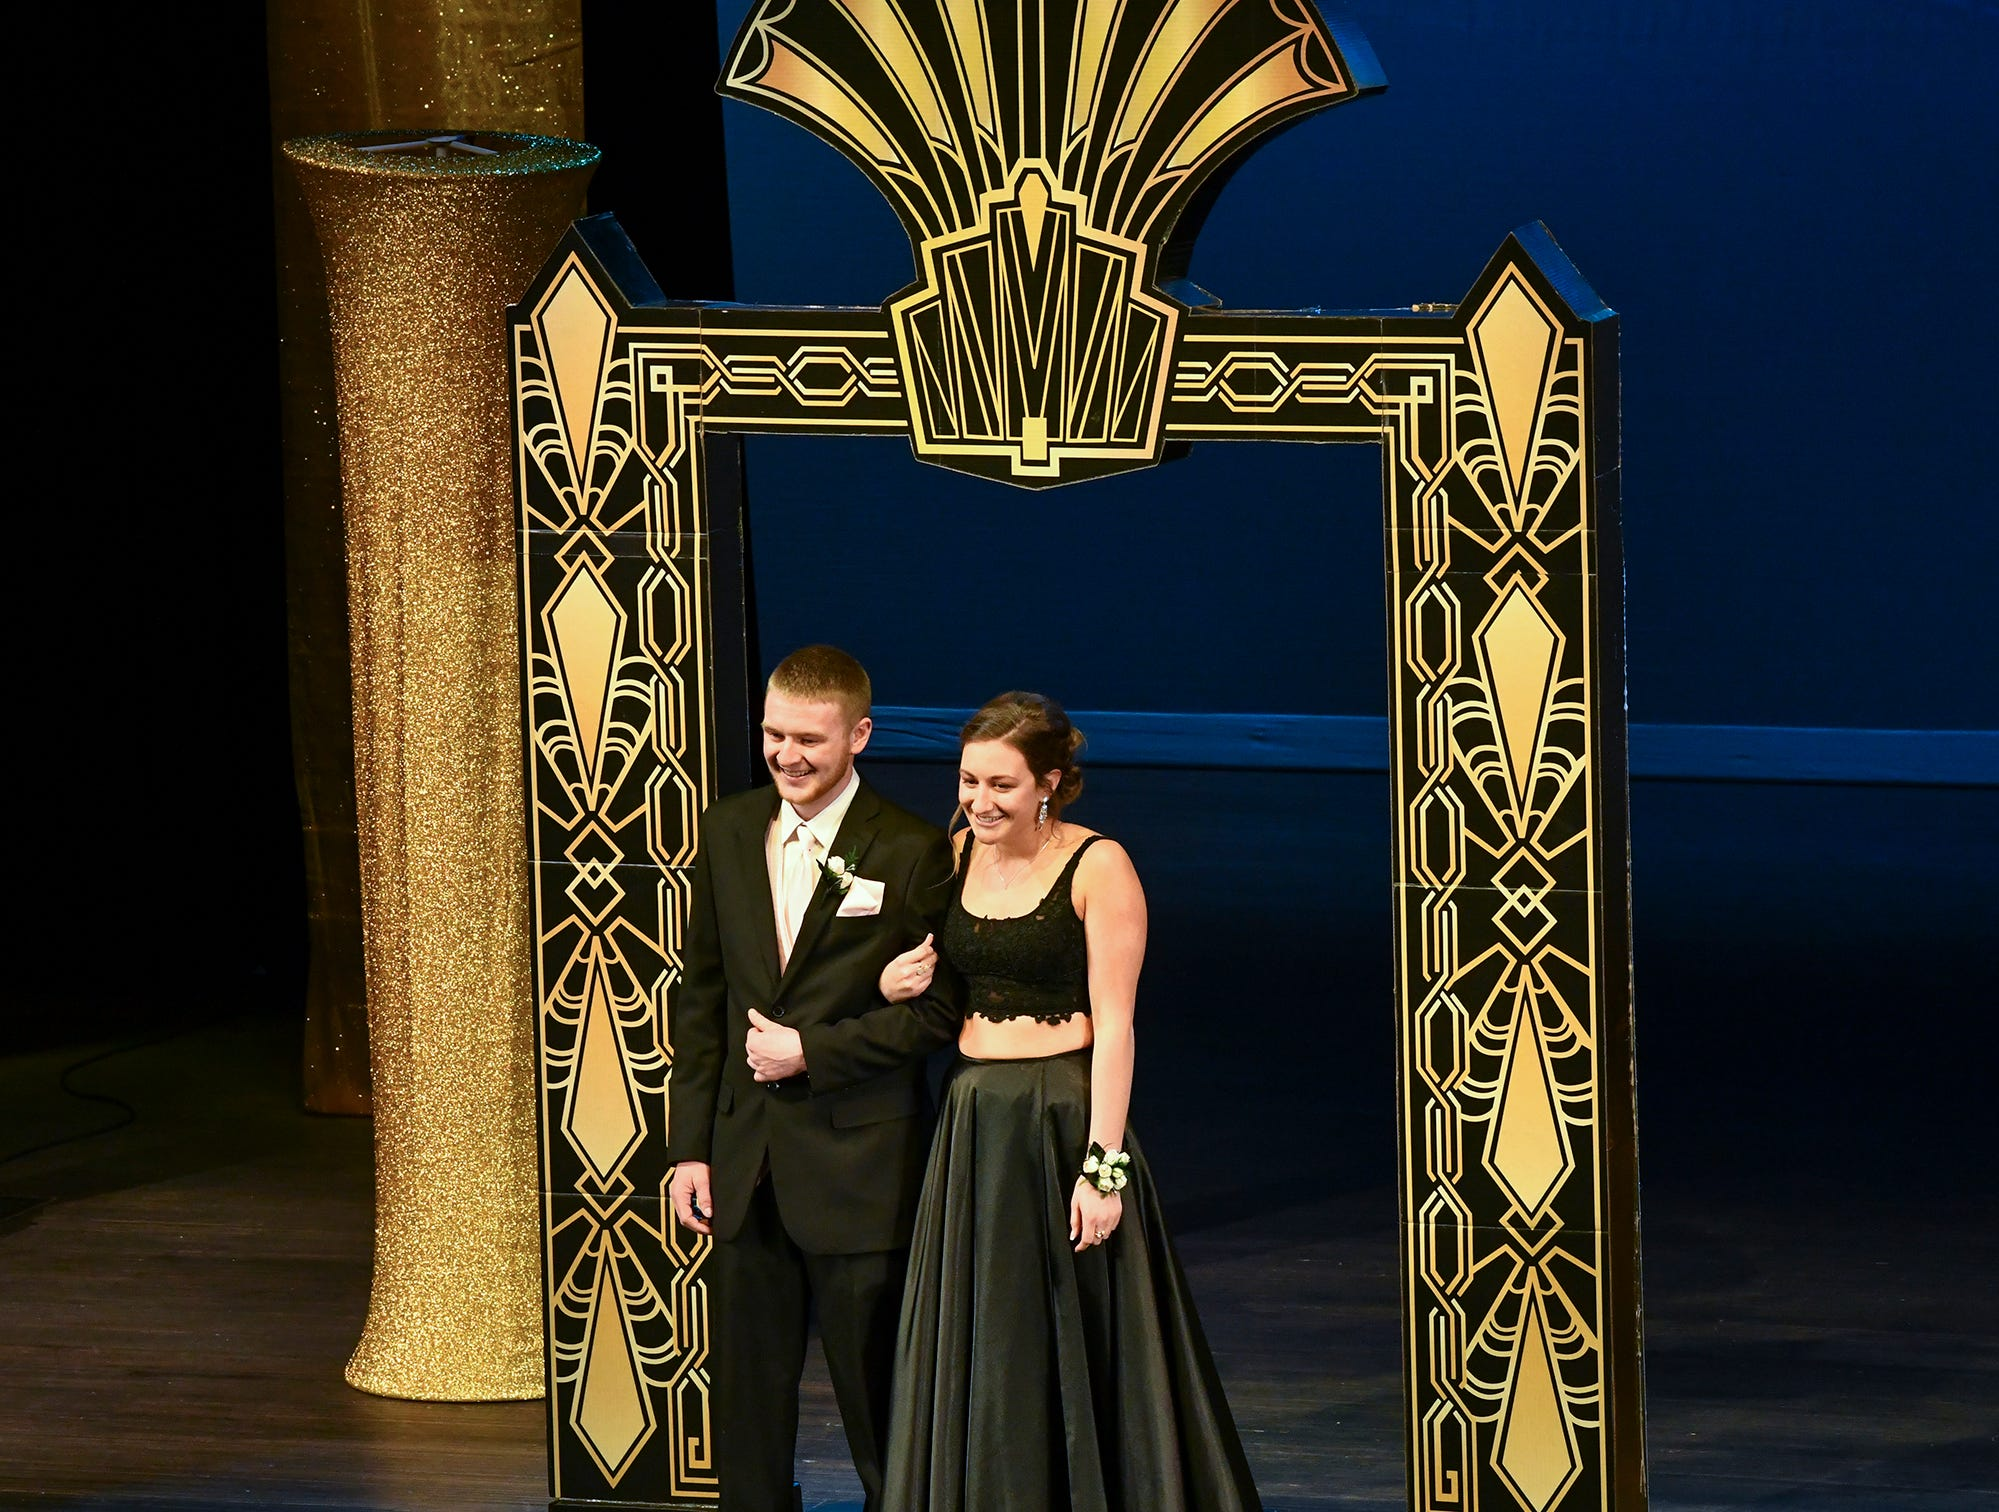 Kallie Linn and Brady Roering smile during prom grand march Saturday, April 6, at Albany High School.